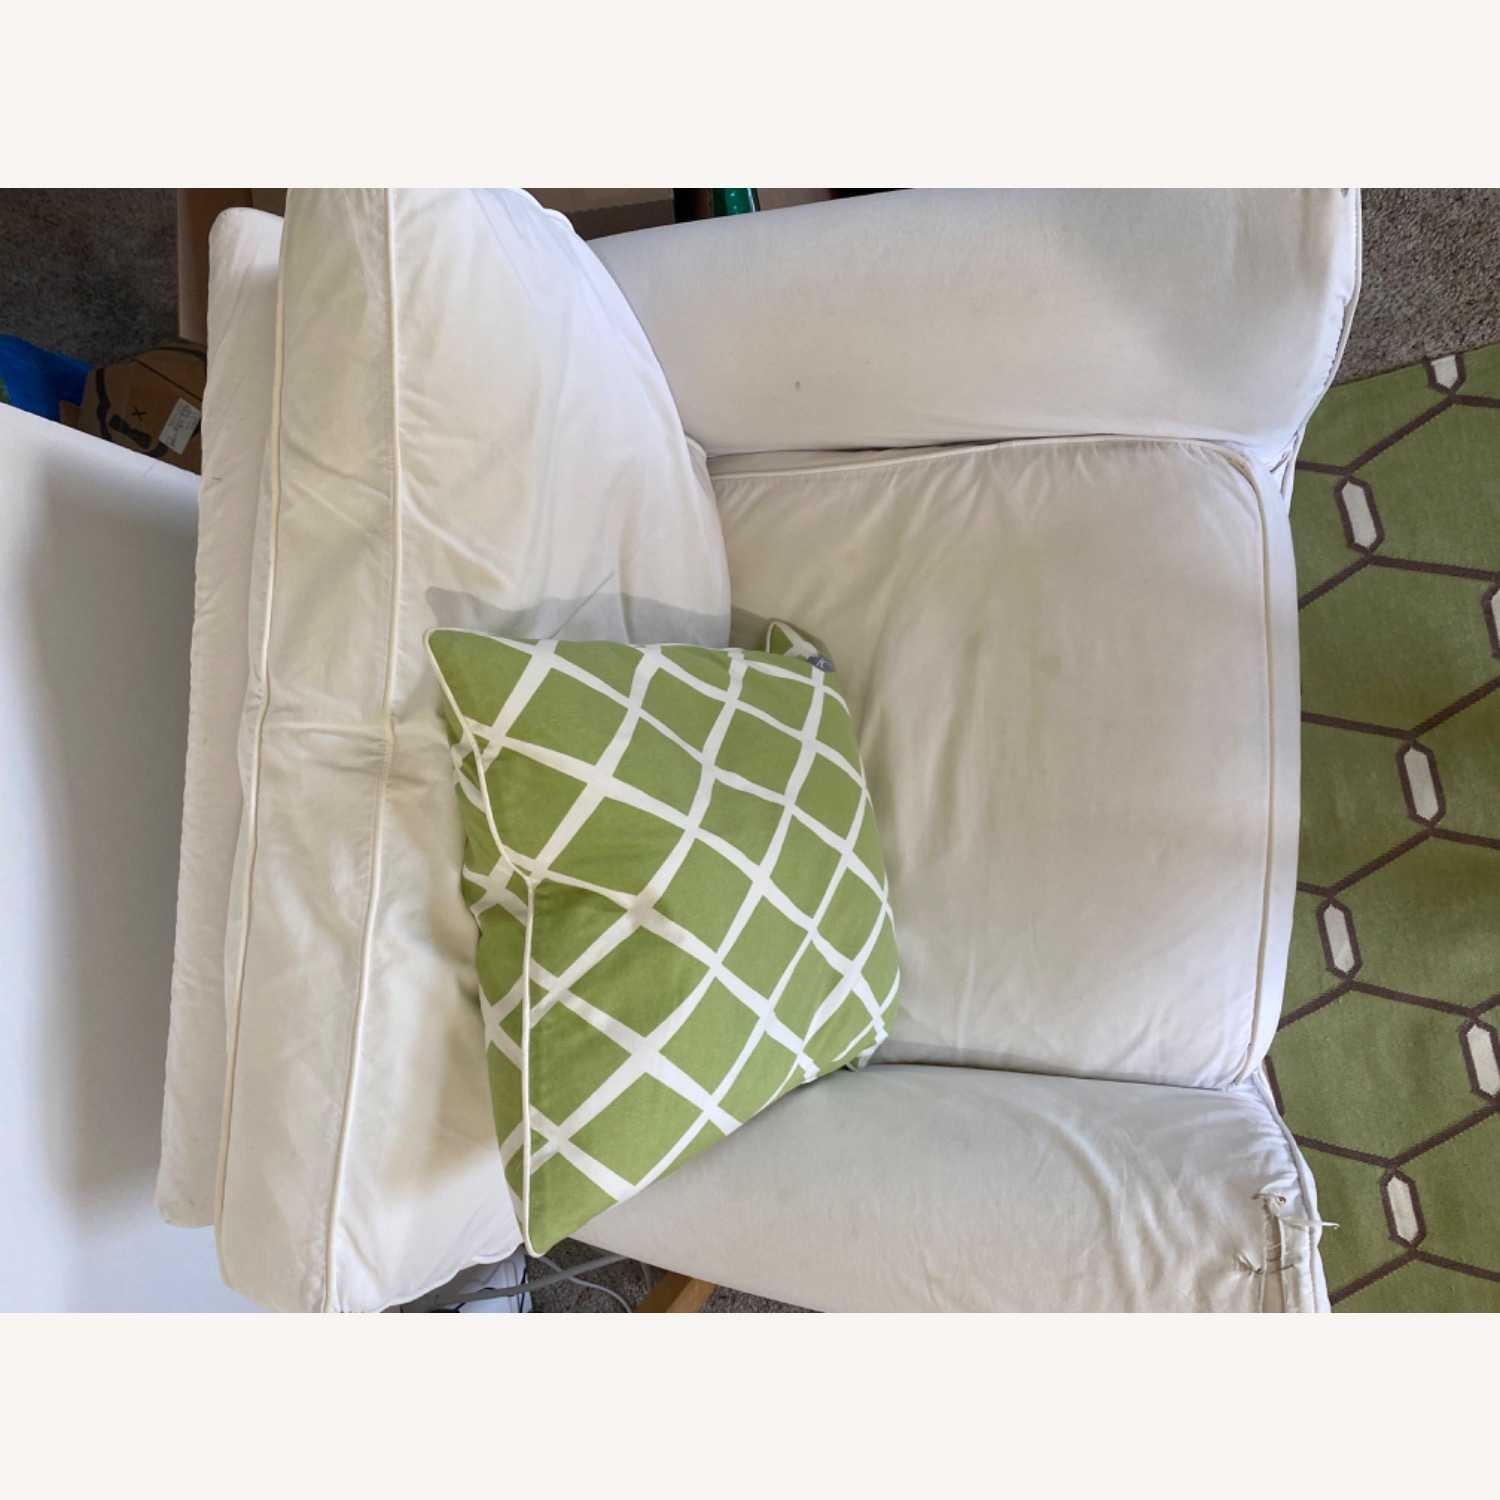 2 Crate & Barrel Chairs - image-3